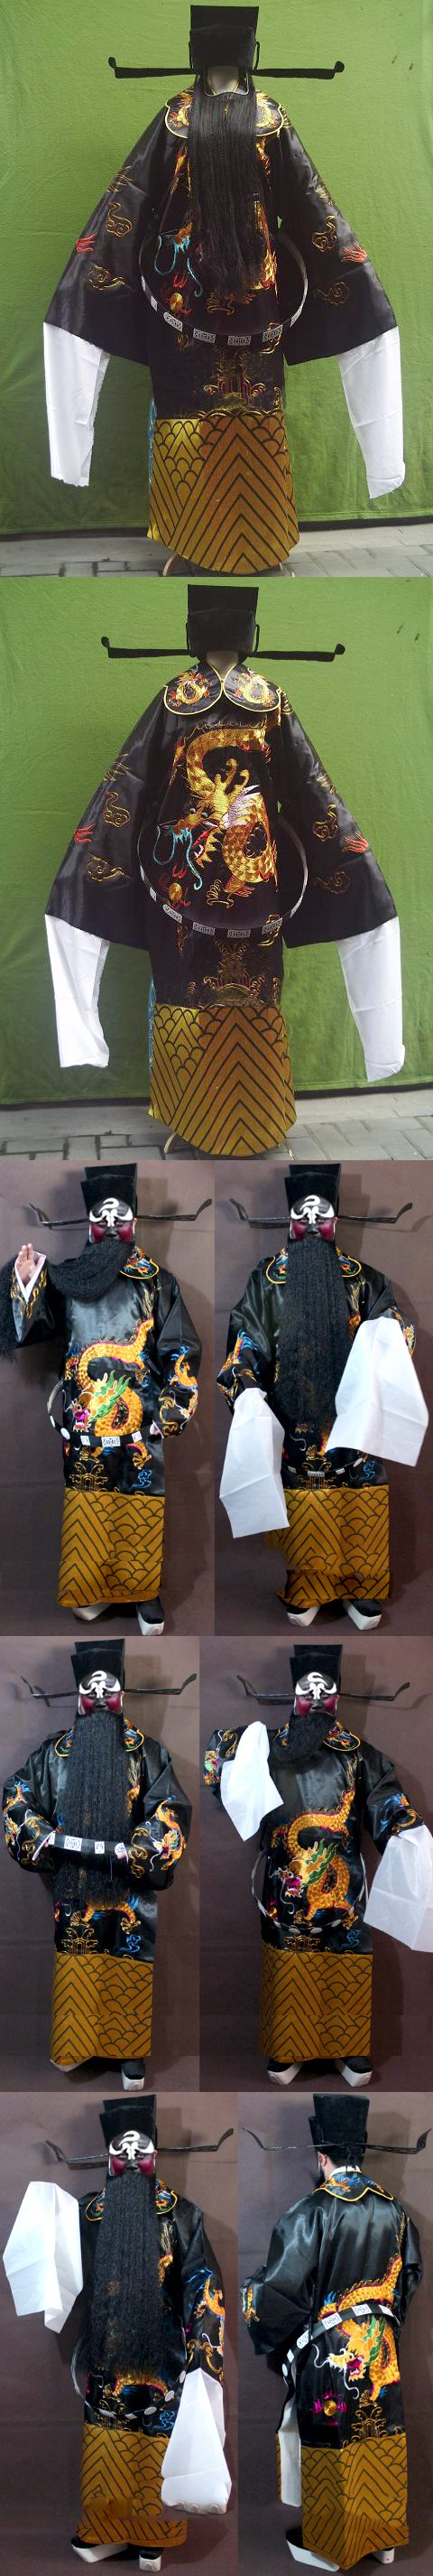 Chinese Ancient Character Costume - Bao Gong